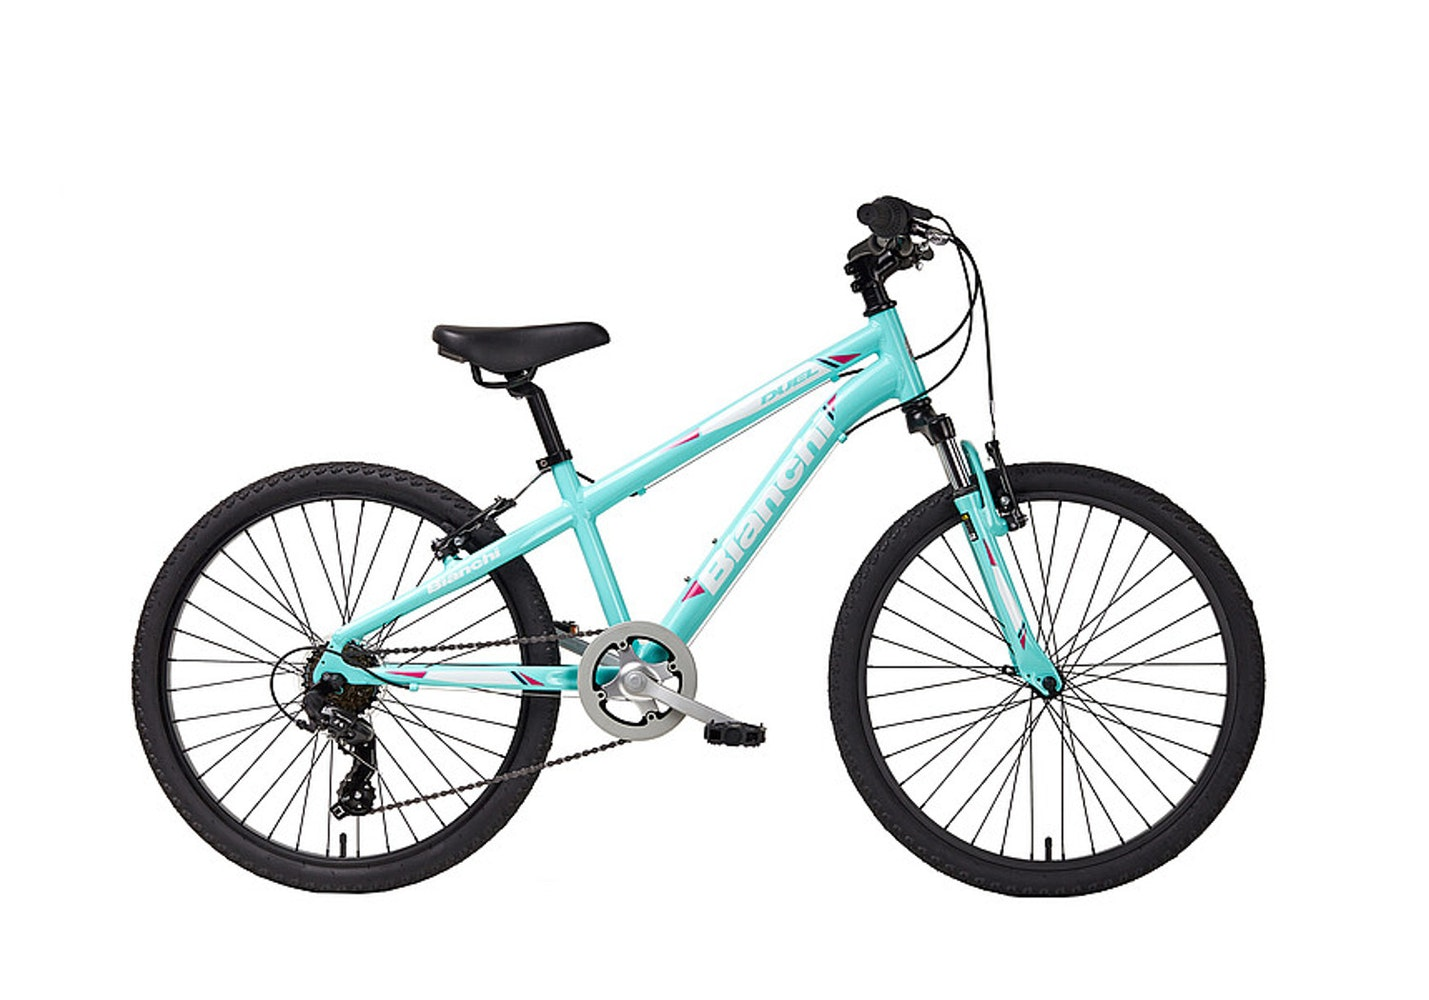 Bianchi Duel 20 Quot Mtb Girls 24 Quot Kids Bikes For Sale In Goolwa